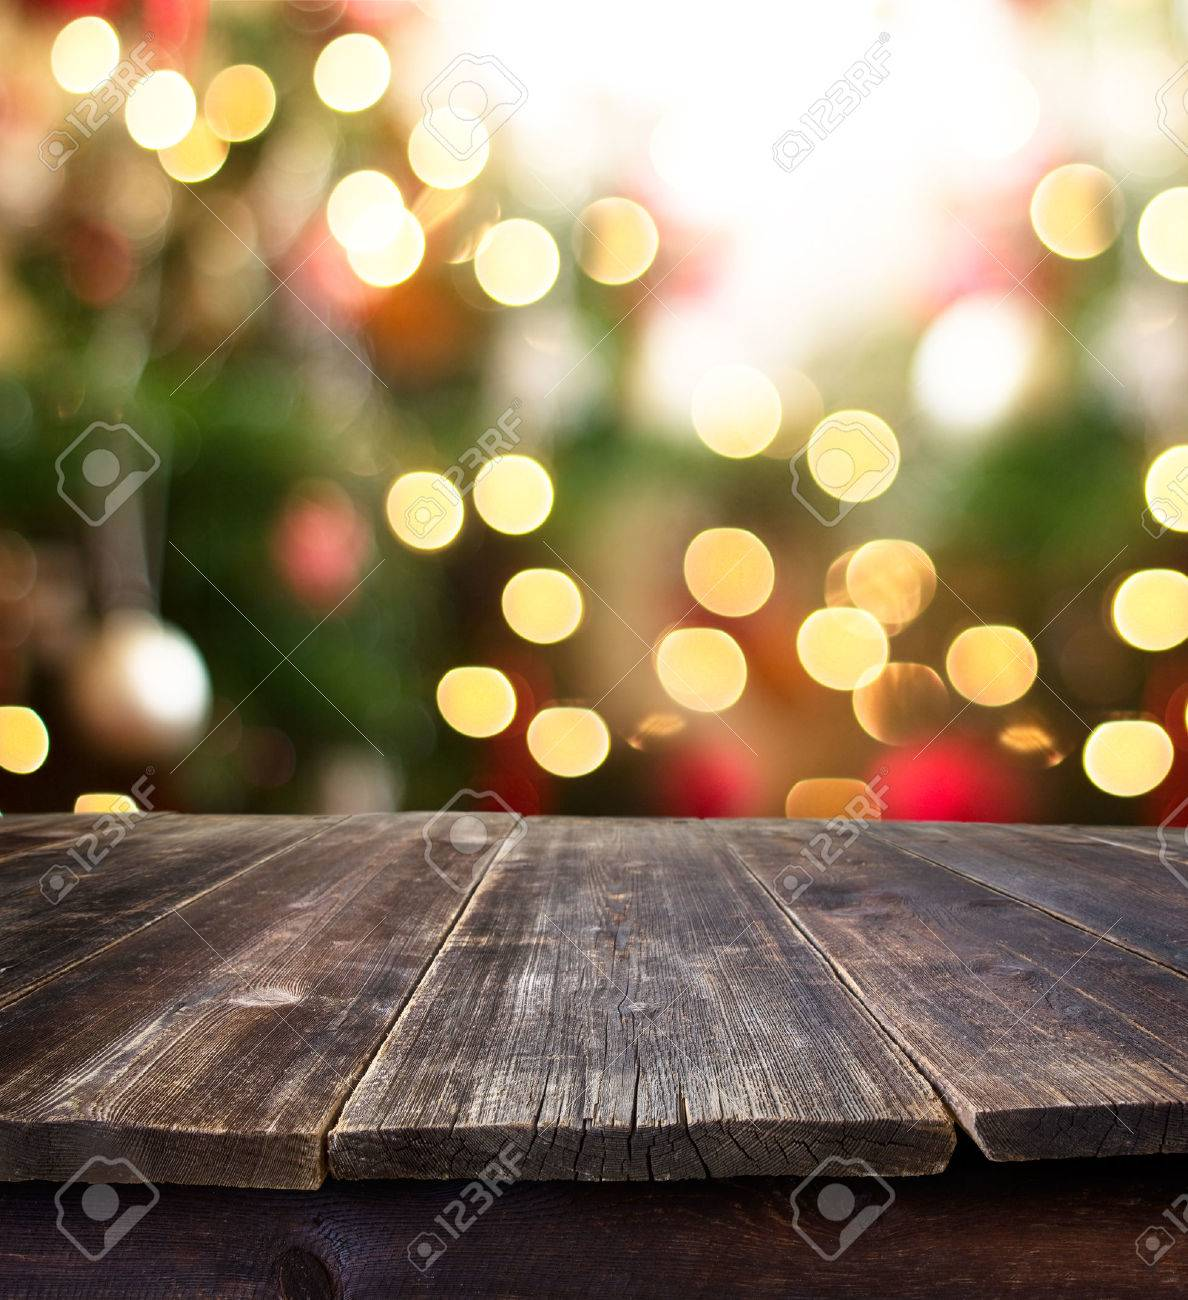 Christmas holiday background with empty rustic table over christmas bokeh for product montage - 32568886